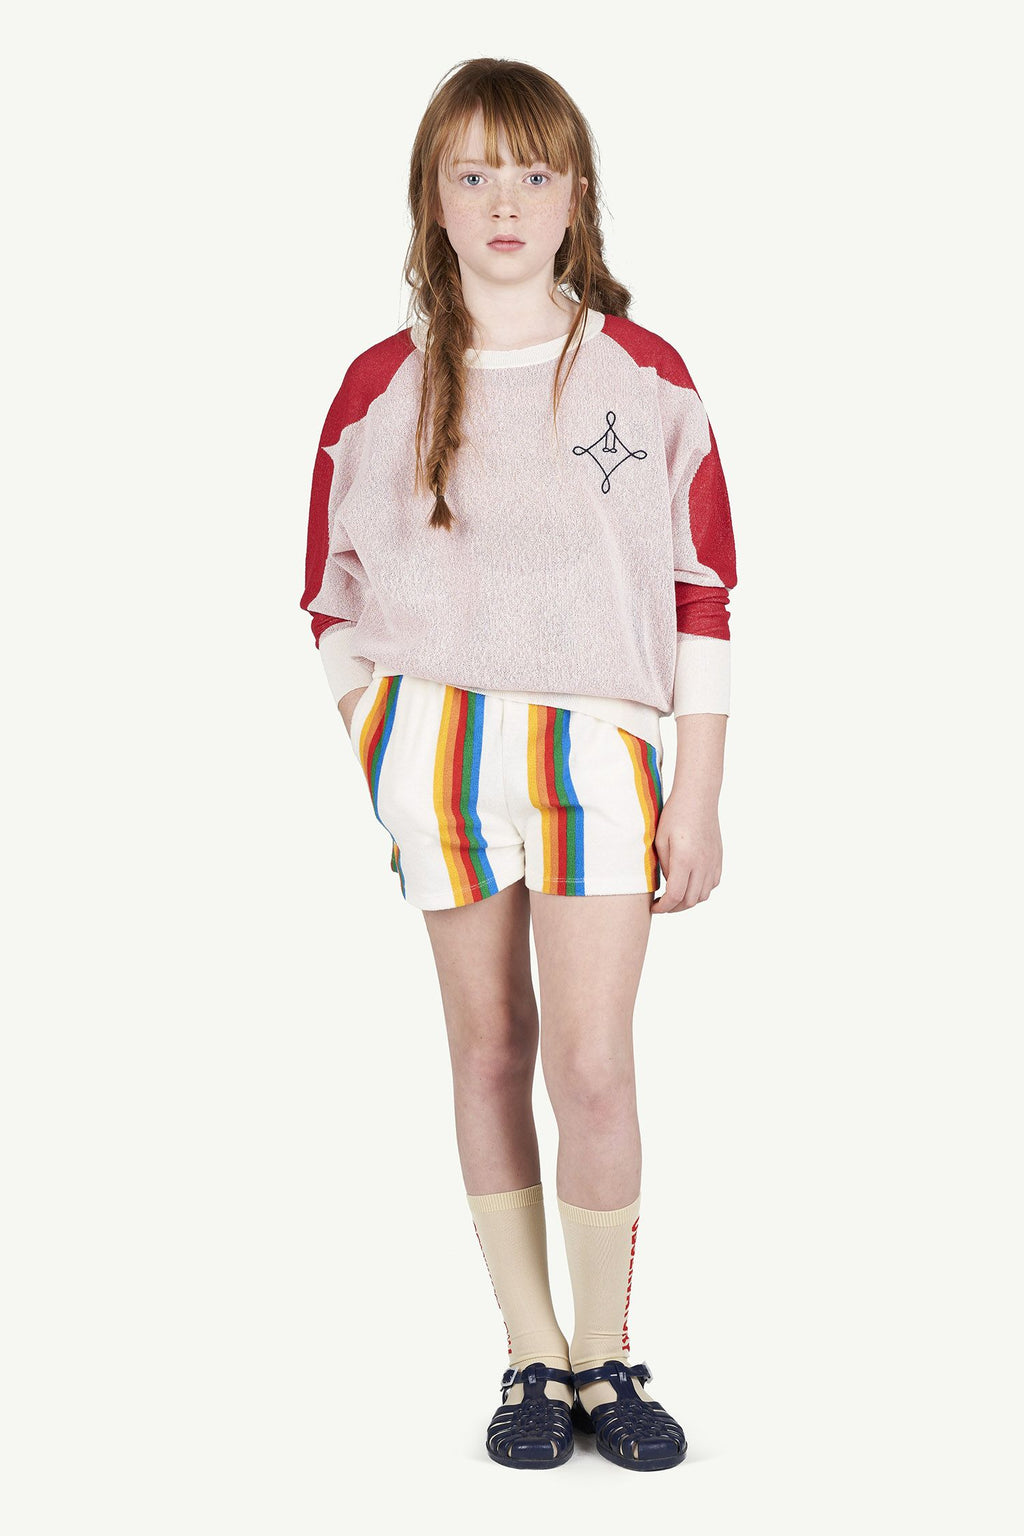 Female model wearing sweatshirt, shorts and biege socks made by The Animal Observatory